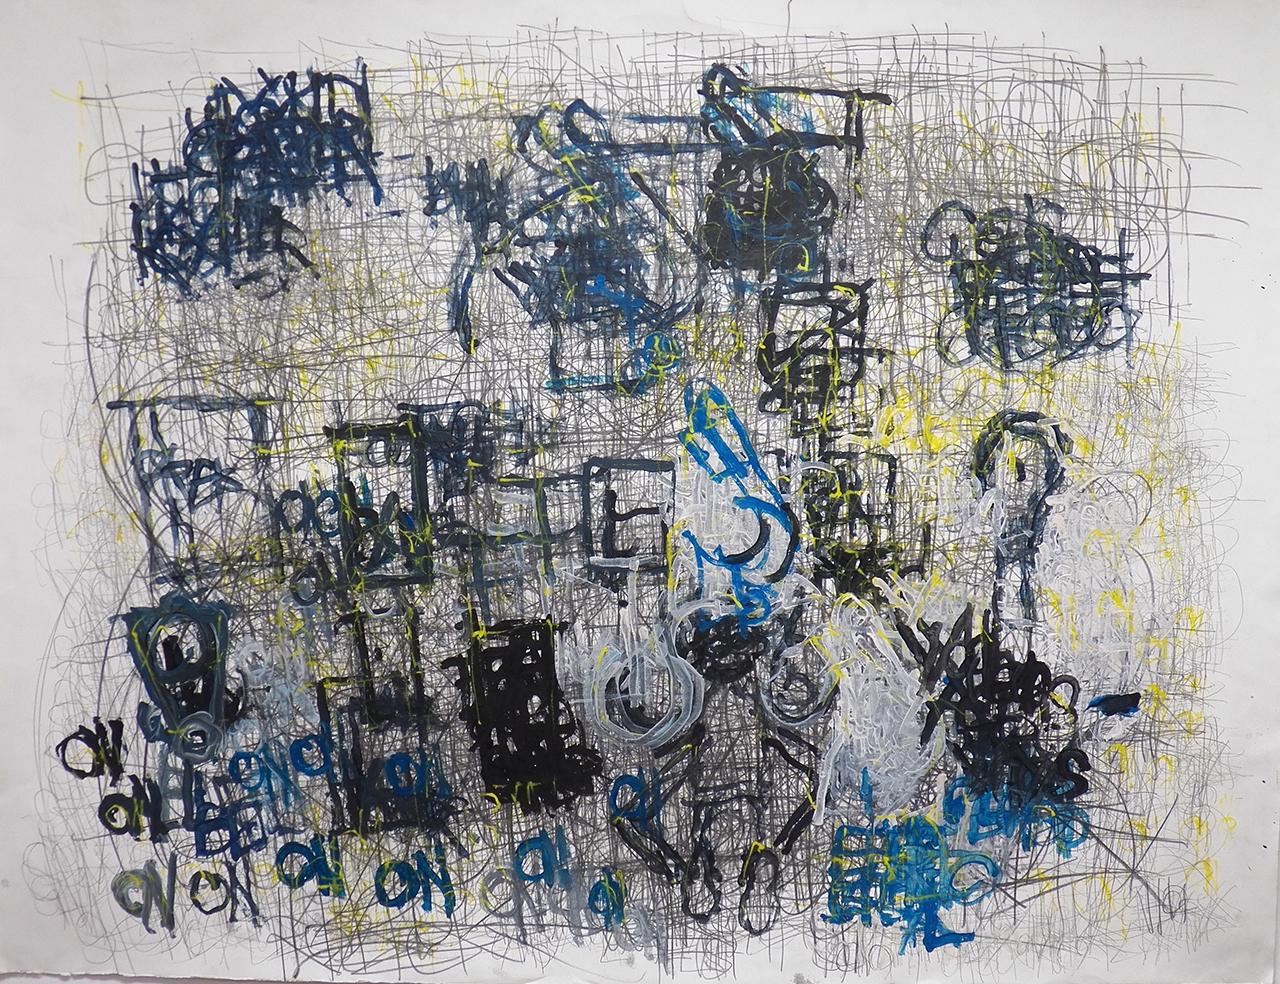 """Dan Miller """"Untitled (blue 'ON' and yellow with graphite)"""" (2011), acrylic and graphite on paper (all images courtesy Ricco Maresca Gallery)"""